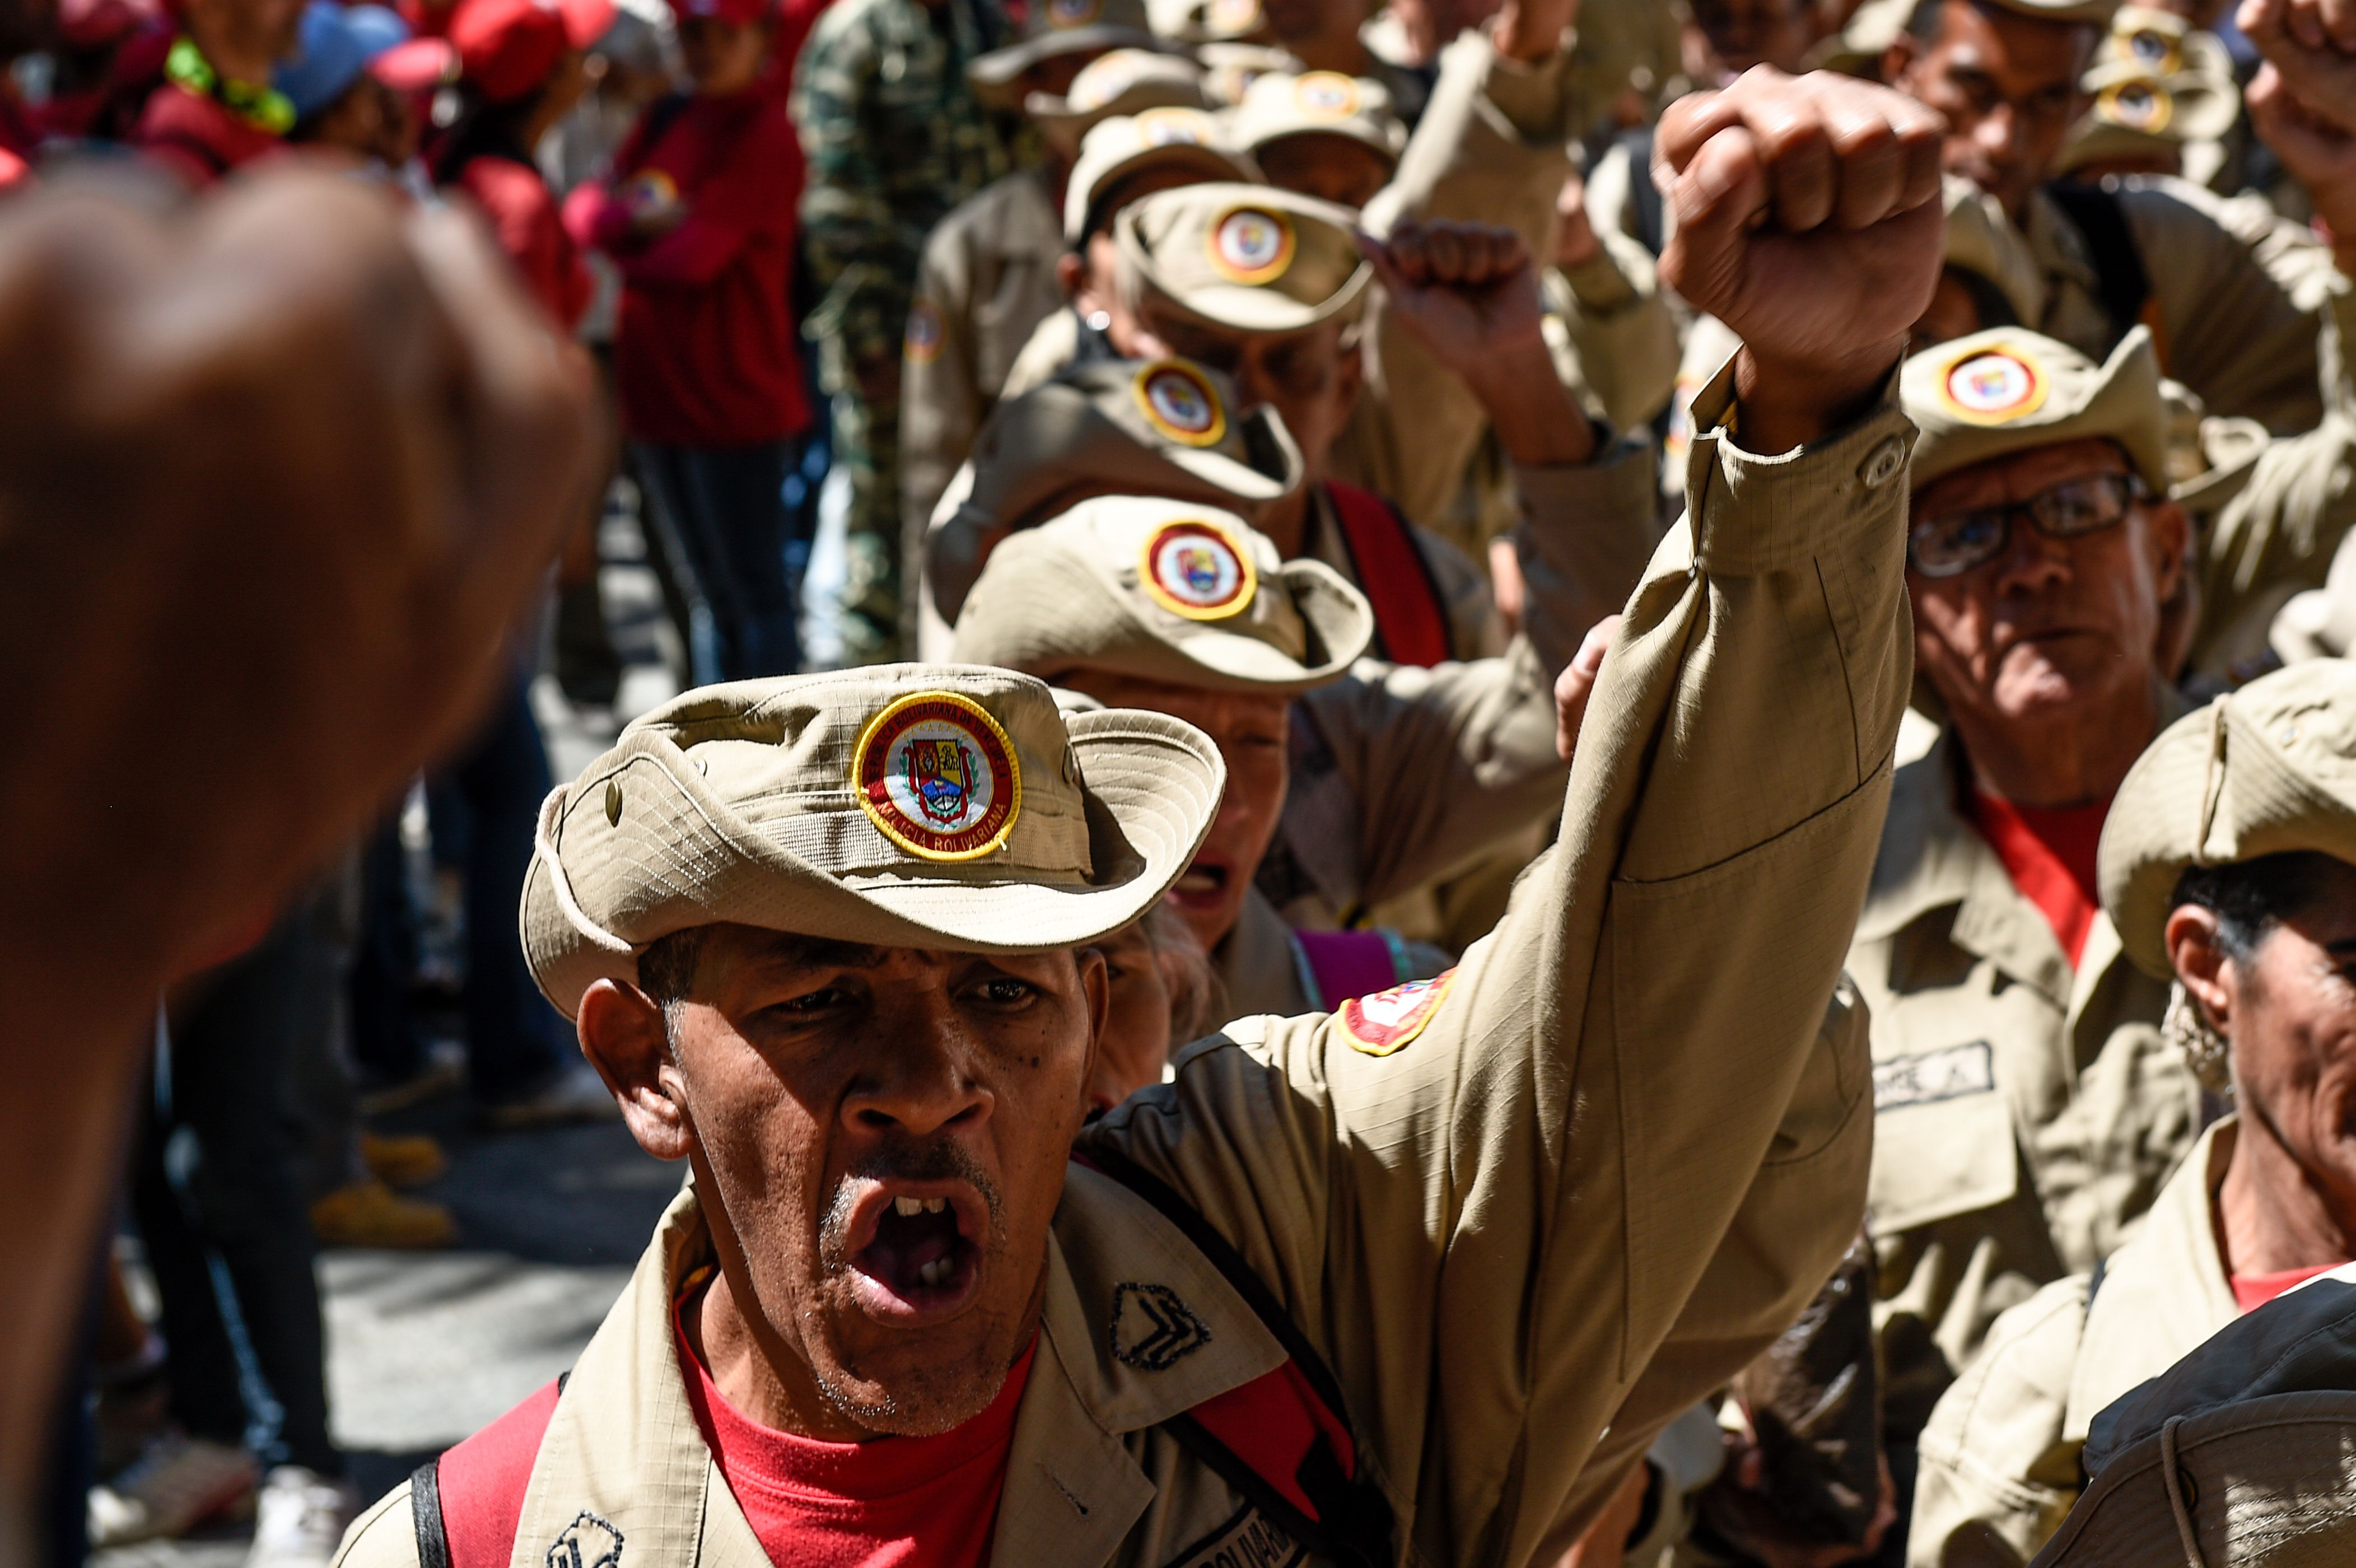 """Members of Venezuela's Bolivarian militia demonstrate in support of President Nicolas Maduro during a commemoration for the """"27th Anniversary of the Military Rebellion of the 4FEB92 and National Dignity Day"""", at Bolivar Square in Caracas, on February 4, 2019. - The United Nations will not join any group of nations promoting initiatives to resolve the crisis in Venezuela, the UN chief said Monday, indicating he will not attend a meeting in Uruguay this week of several countries. Mexico and Uruguay had hoped that UN Secretary-General Antonio Guterres would attend a conference in Montevideo on Thursday aimed at promoting dialogue between Venezuela's President Nicolas Maduro and opposition leader Juan Guaido. (Photo by Federico PARRA / AFP)        (Photo credit should read FEDERICO PARRA/AFP/Getty Images)"""